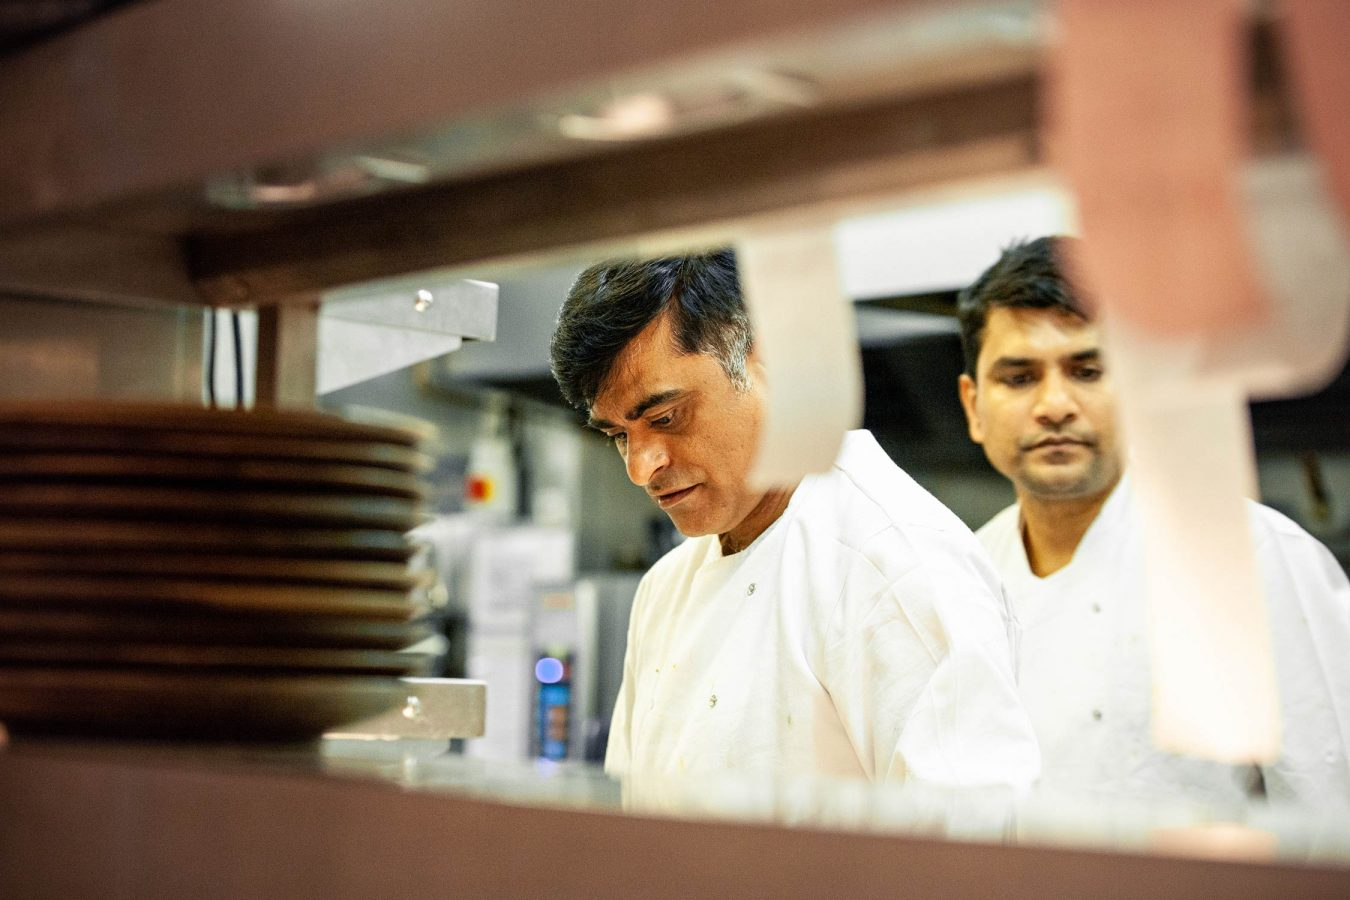 chefs-restaurant-photography-atithi-cambridge